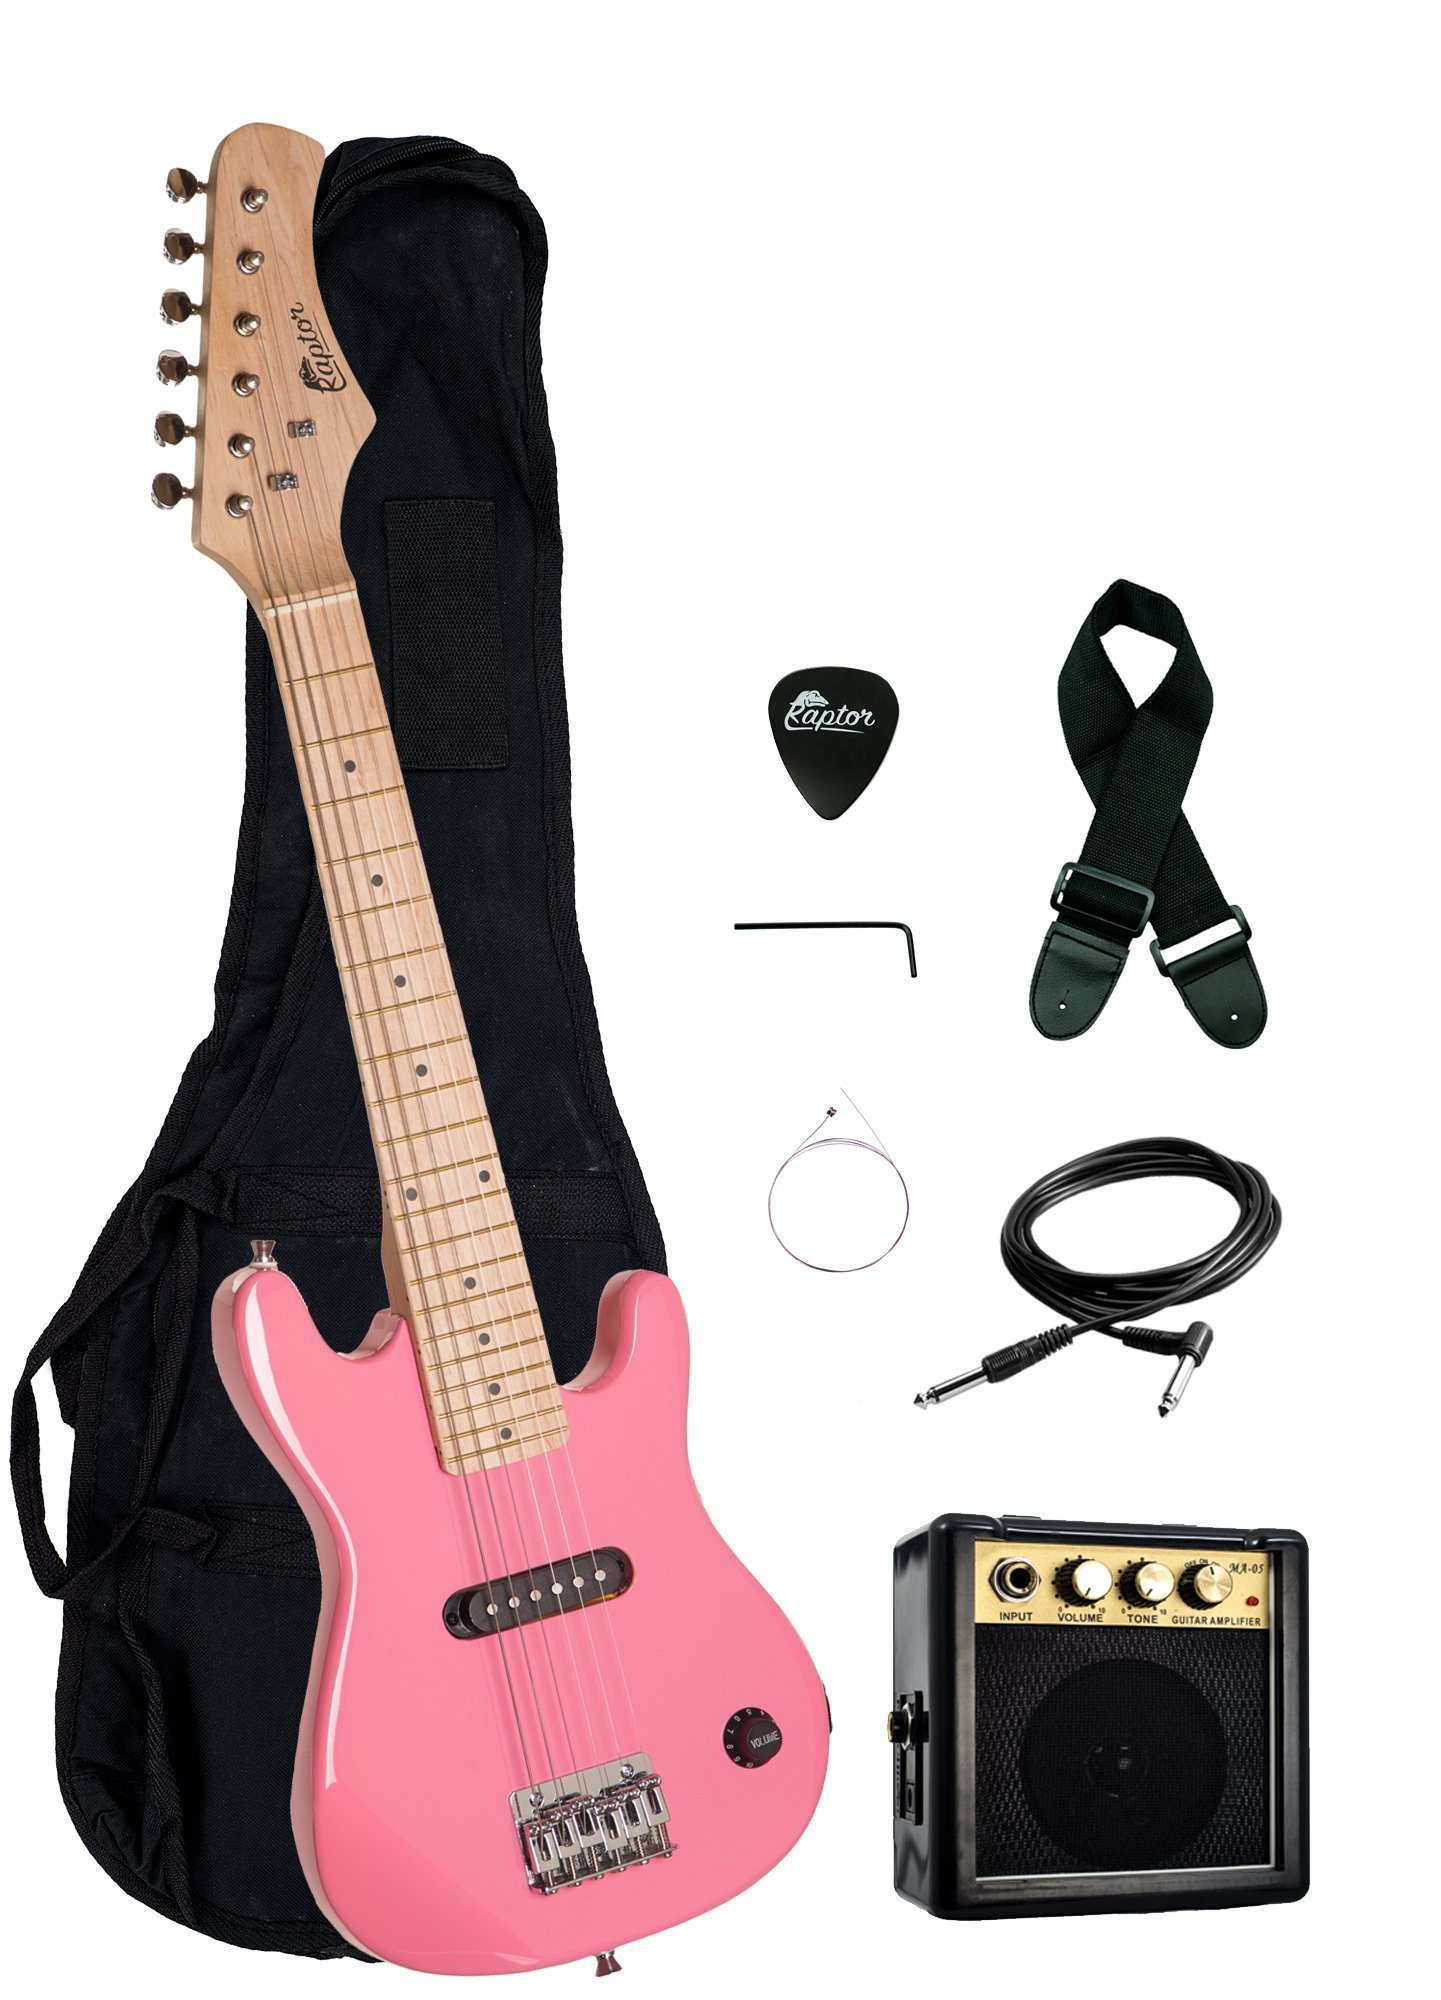 Raptor EP3 30'' Kids 1/2 Size Electric Guitar Package with Portable 3W Amp, Gig Bag, Strap, Cable and Raptor Picks - PINK